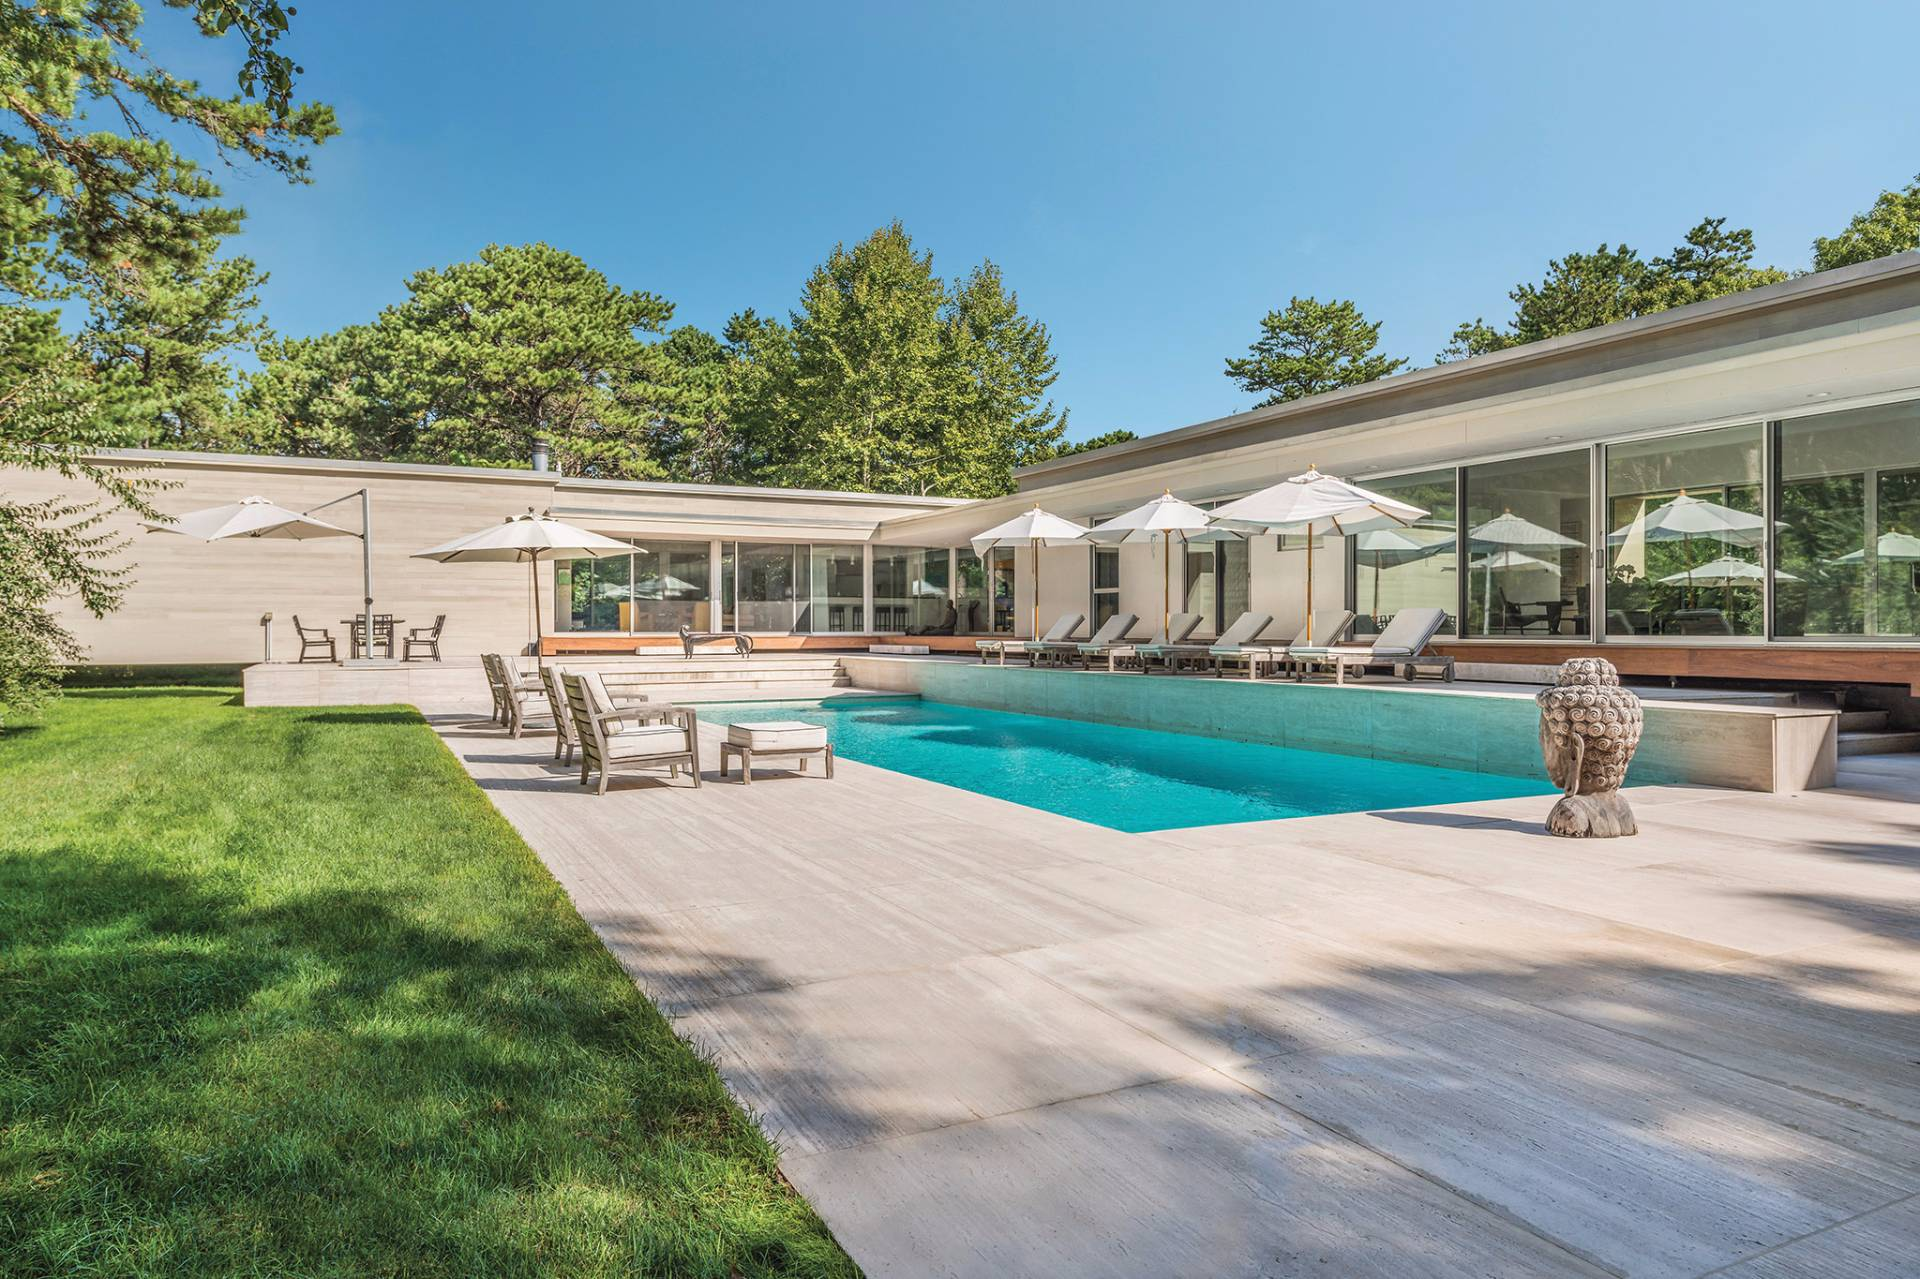 Single Family Home for Sale at Reduced Live In Your Art A Modern Masterpiece In Sagaponack 25 Forest Crossing, Sagaponack, New York